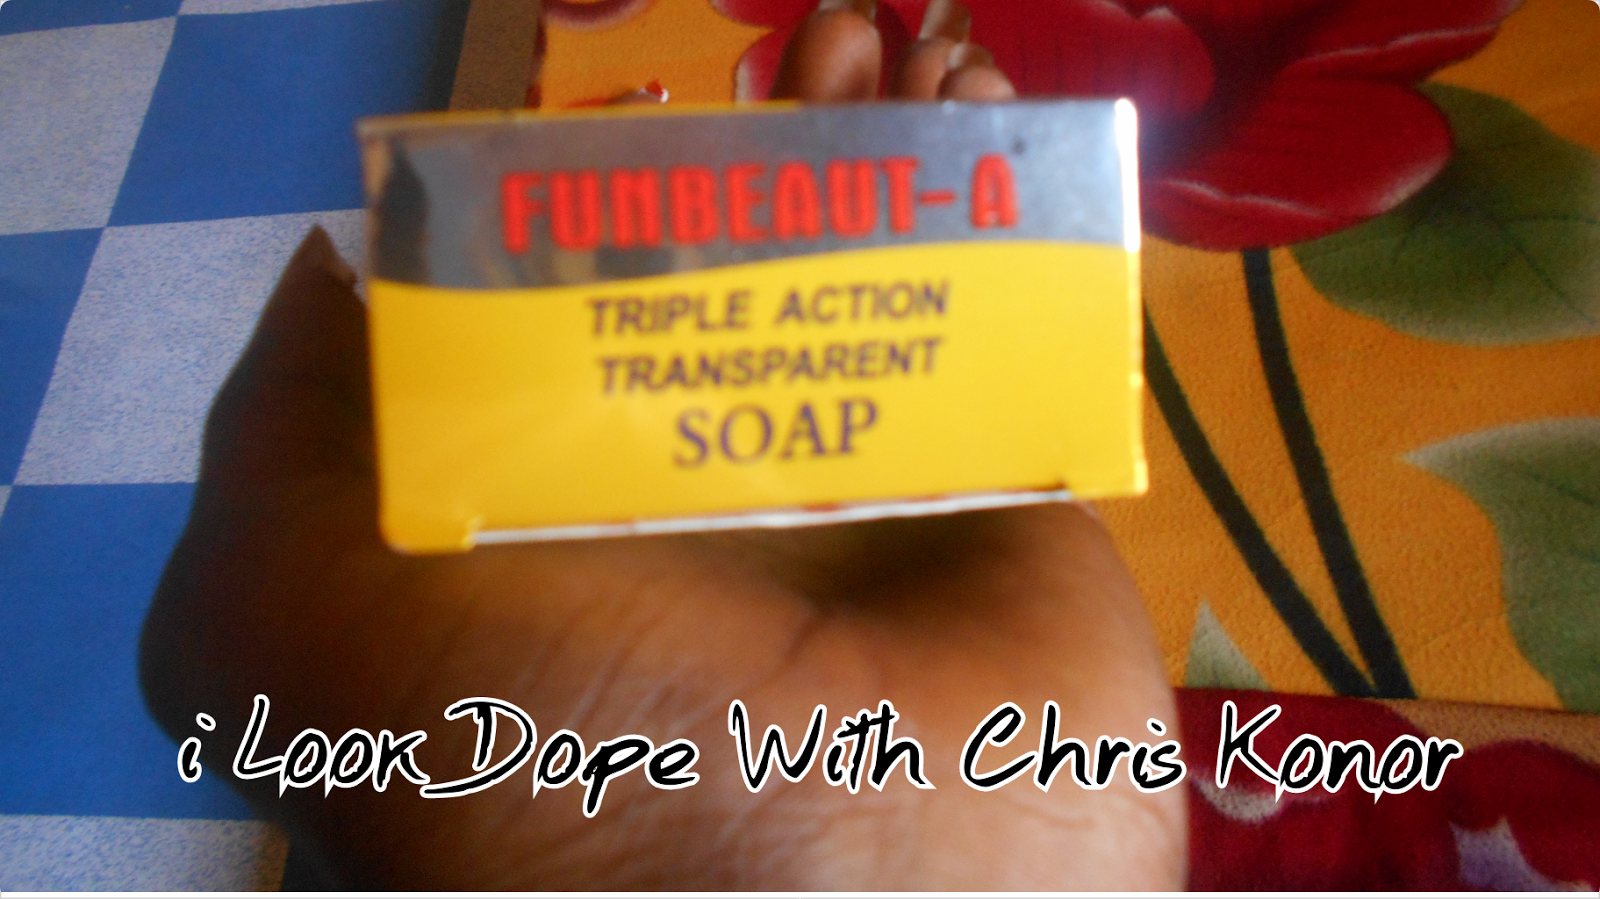 Review of funbeaut-a triple action transperant cleansing bar soap review, for a clear healthy skin, about funbeaut-a soap, is funbeaut-a soap safe, where to buy funbeaut-a soap, soap to cure pimples, funbeaut-a soap comments, photos, pictures